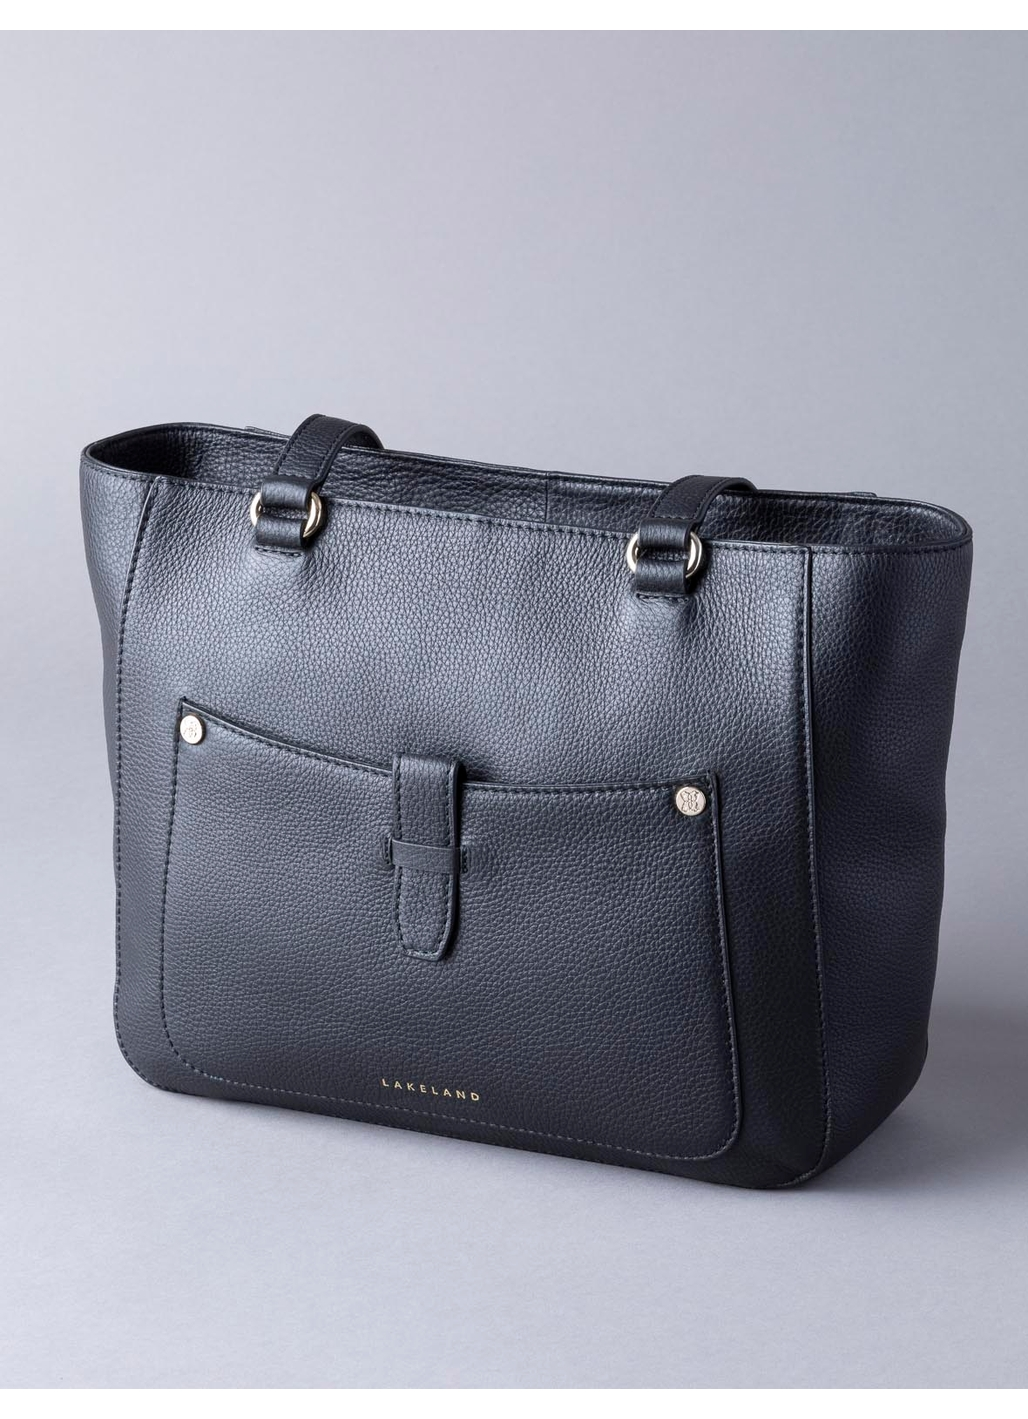 Fairfield Leather Tote Bag in Black